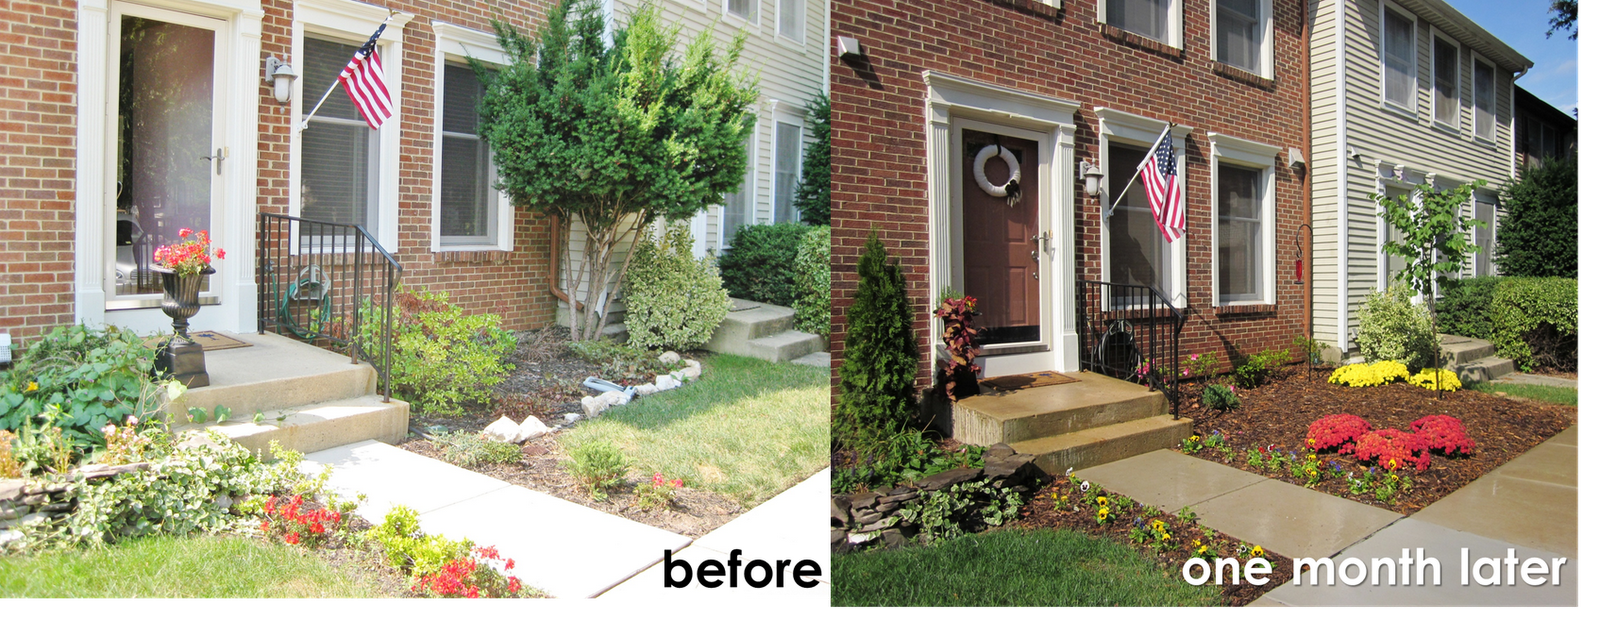 bonnieprojects  relandscaping the front yard